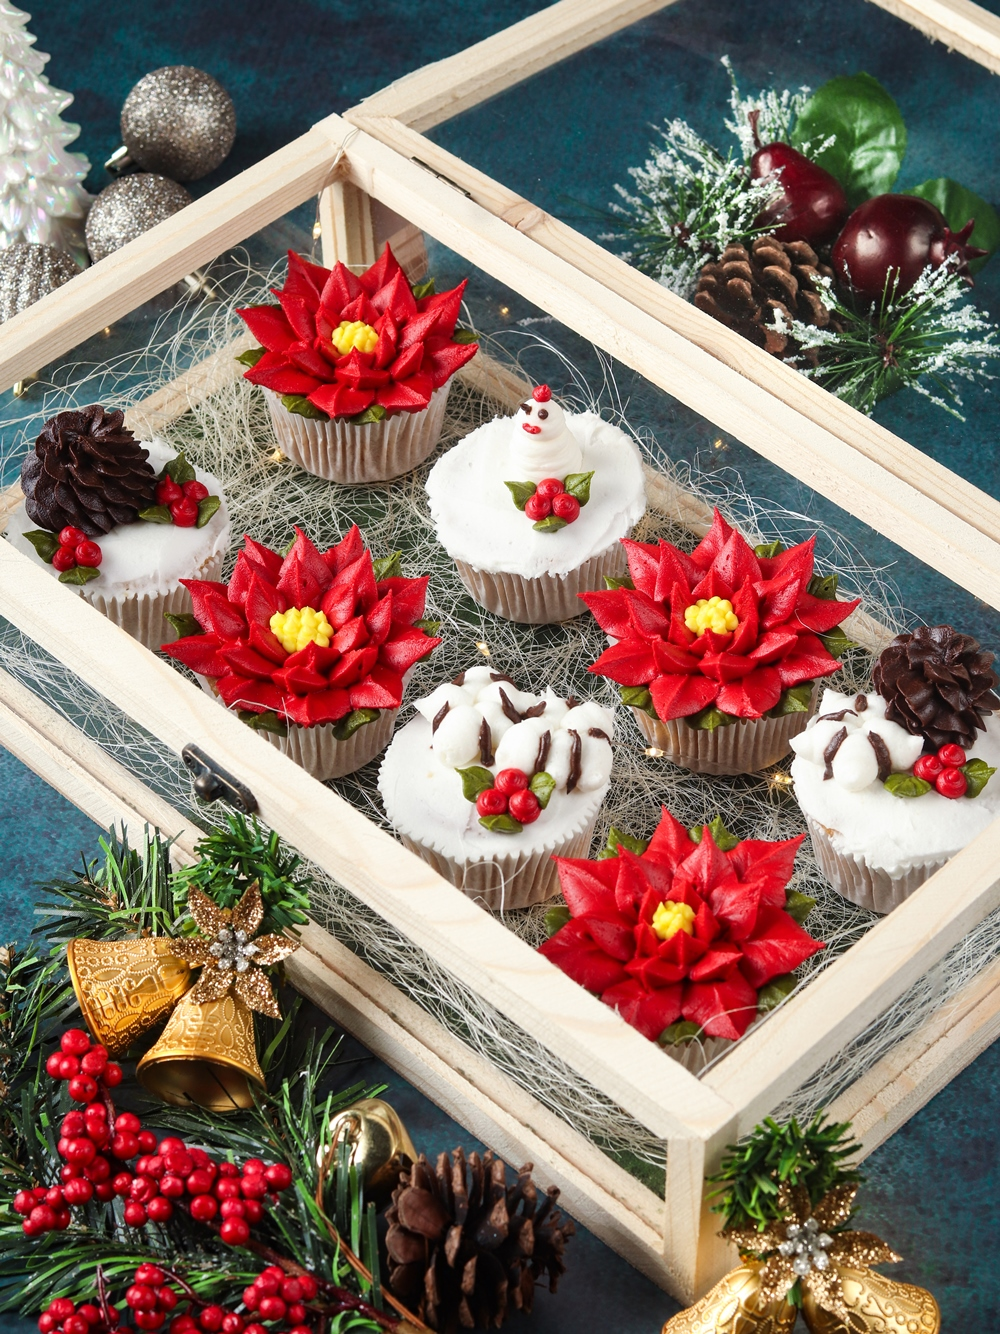 Sheetal's Baked With Love- Cupcakes in Poinsettia and pine cones